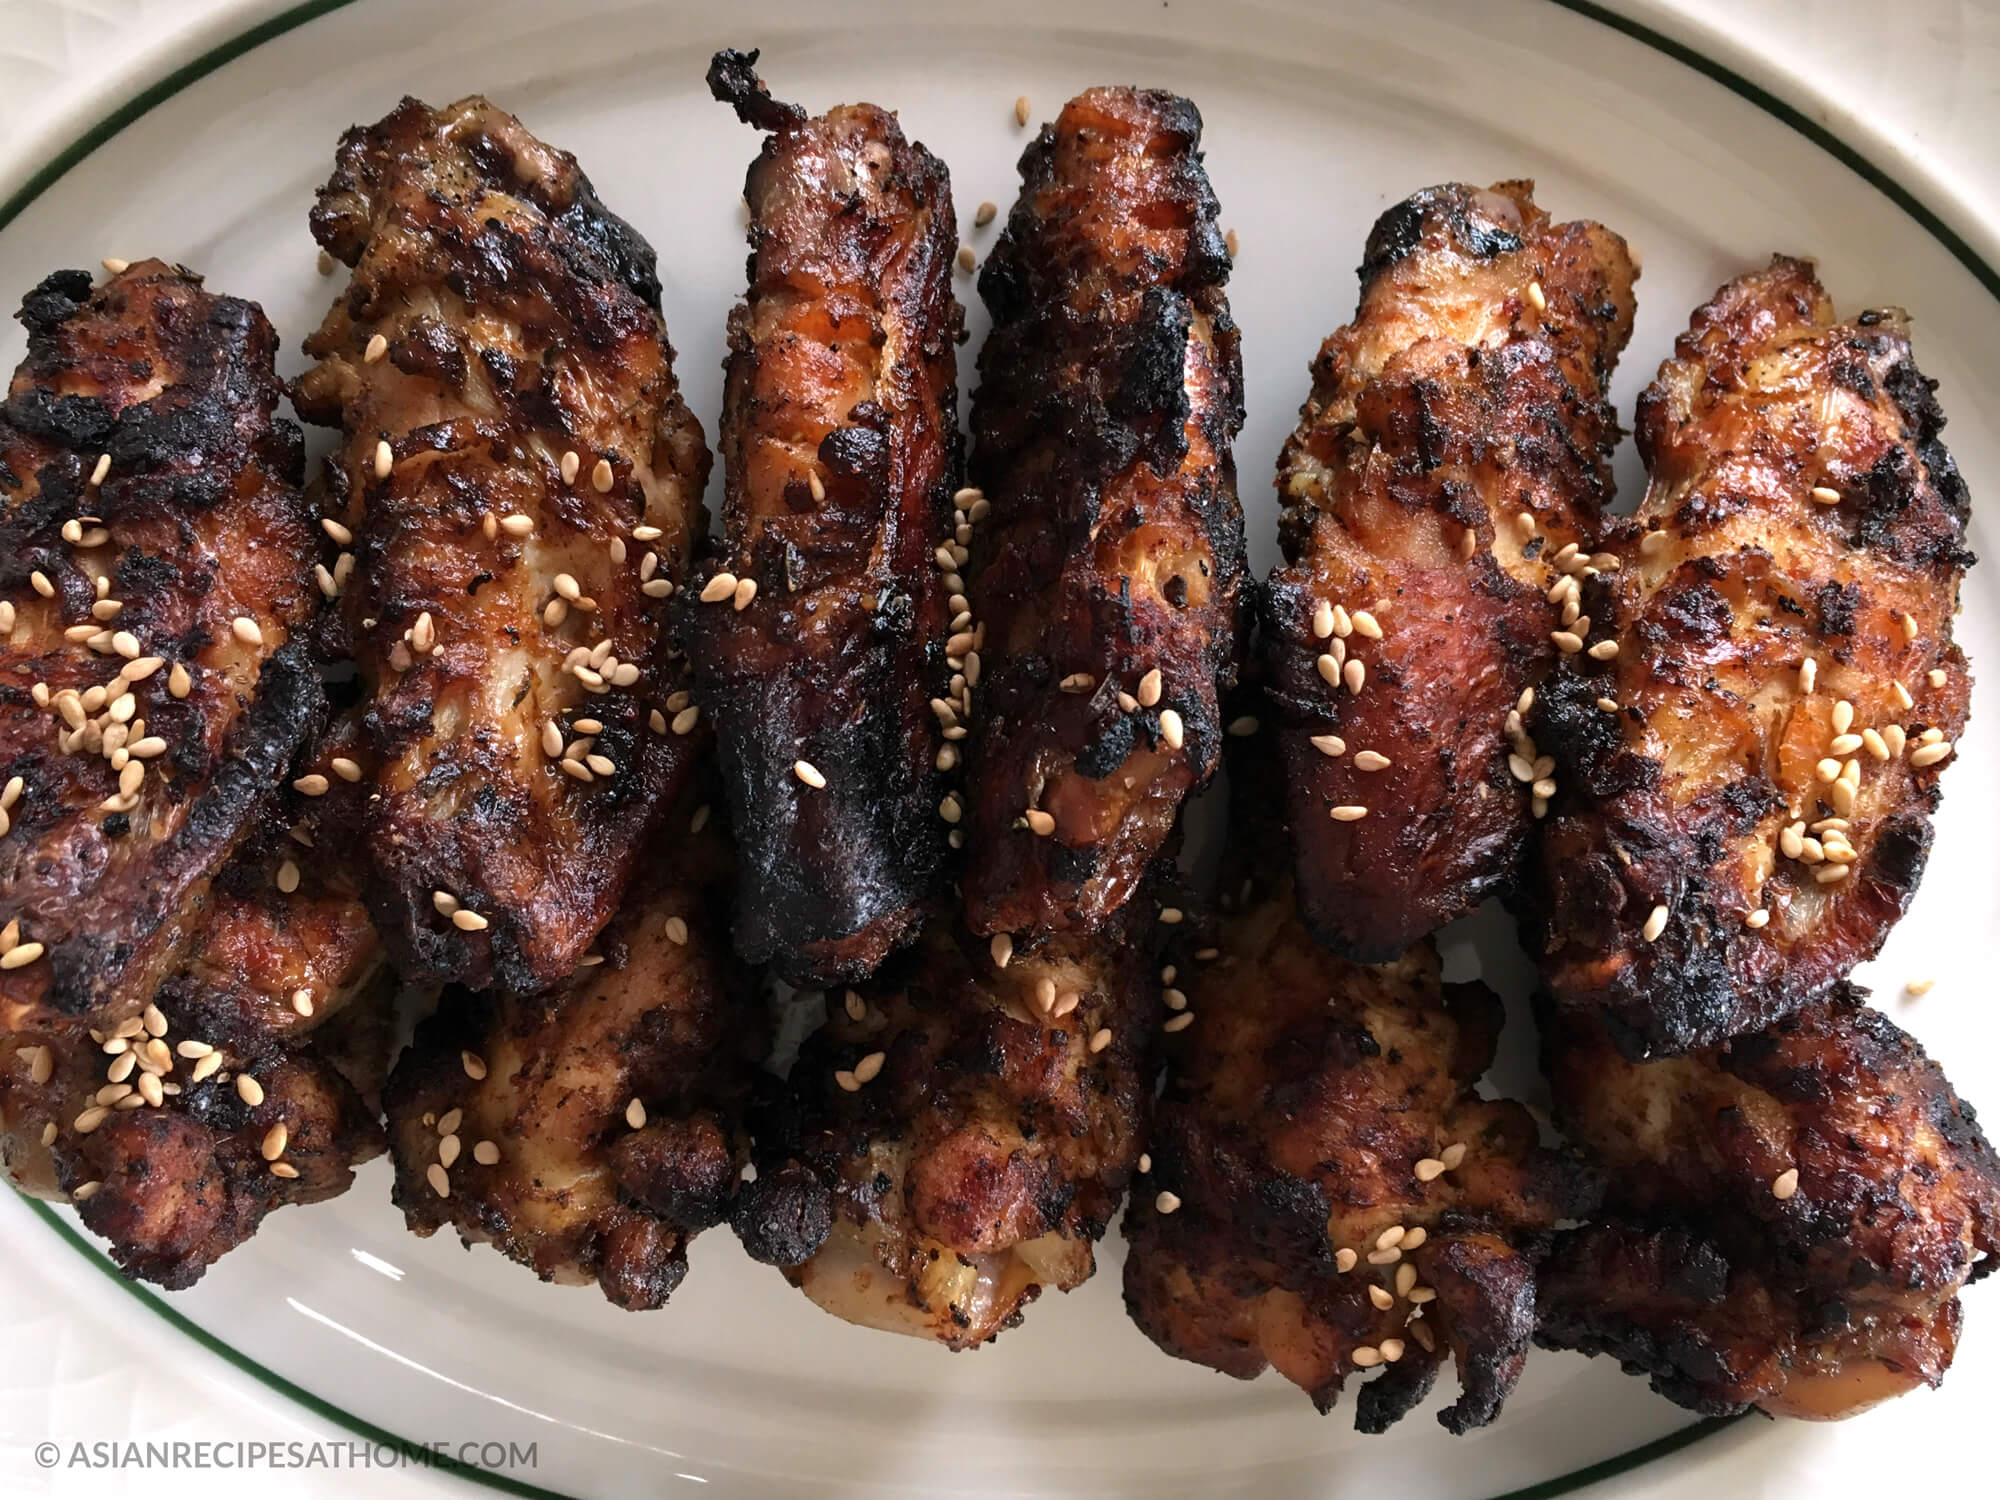 These chicken wings are grilled to perfection in an Asian inspired sauce.